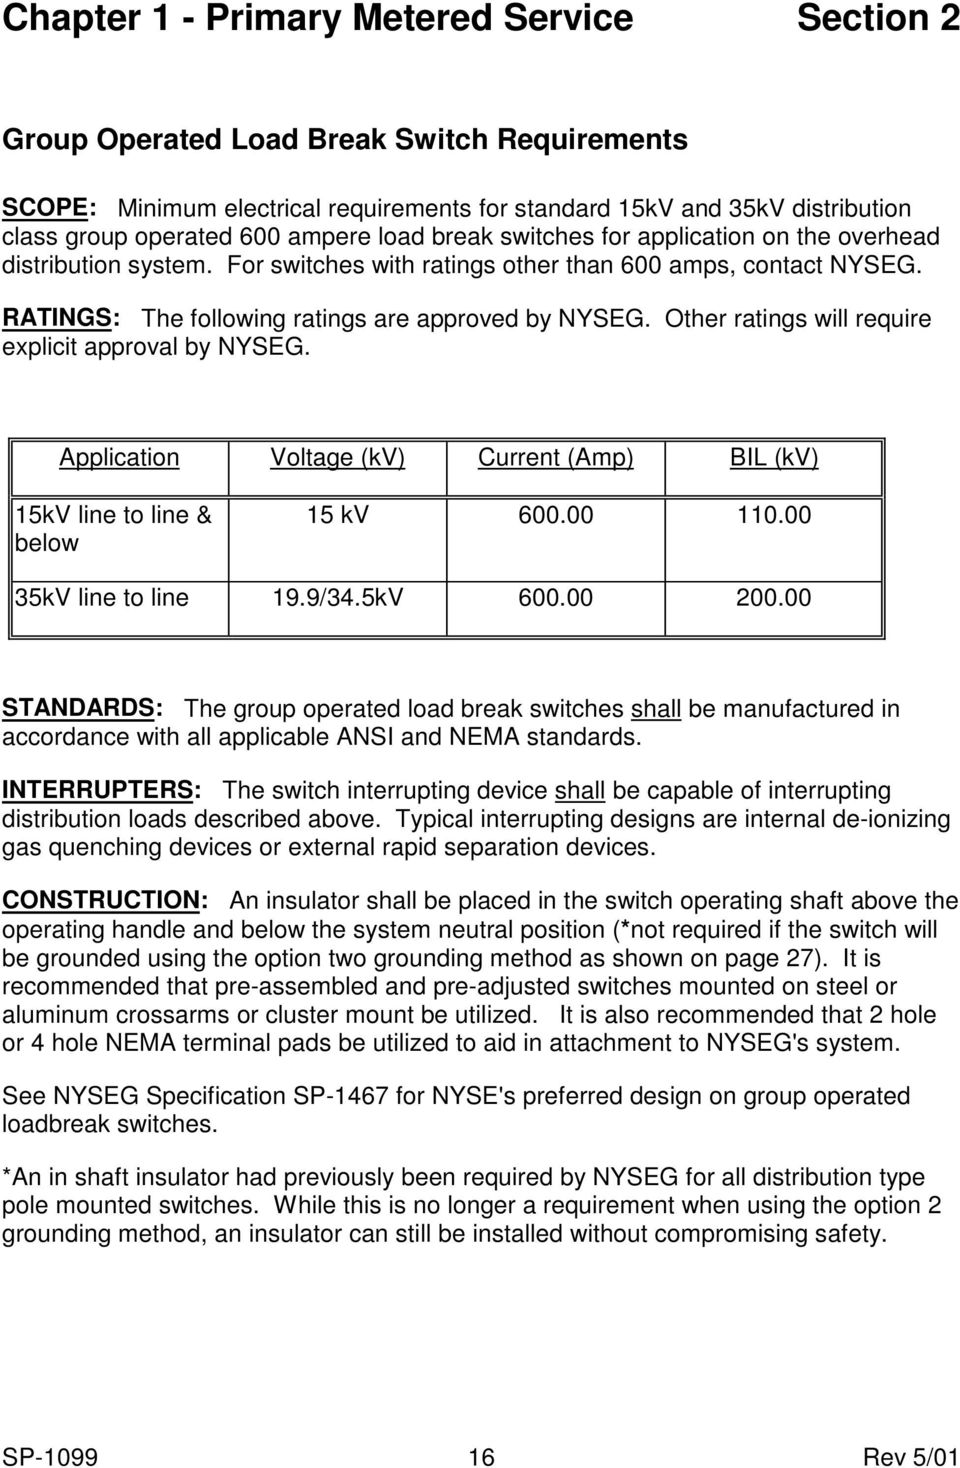 Other ratings will require explicit approval by NYSEG. Application Voltage (kv) Current (Amp) BIL (kv) 15kV line to line & below 15 kv 600.00 110.00 35kV line to line 19.9/34.5kV 600.00 200.